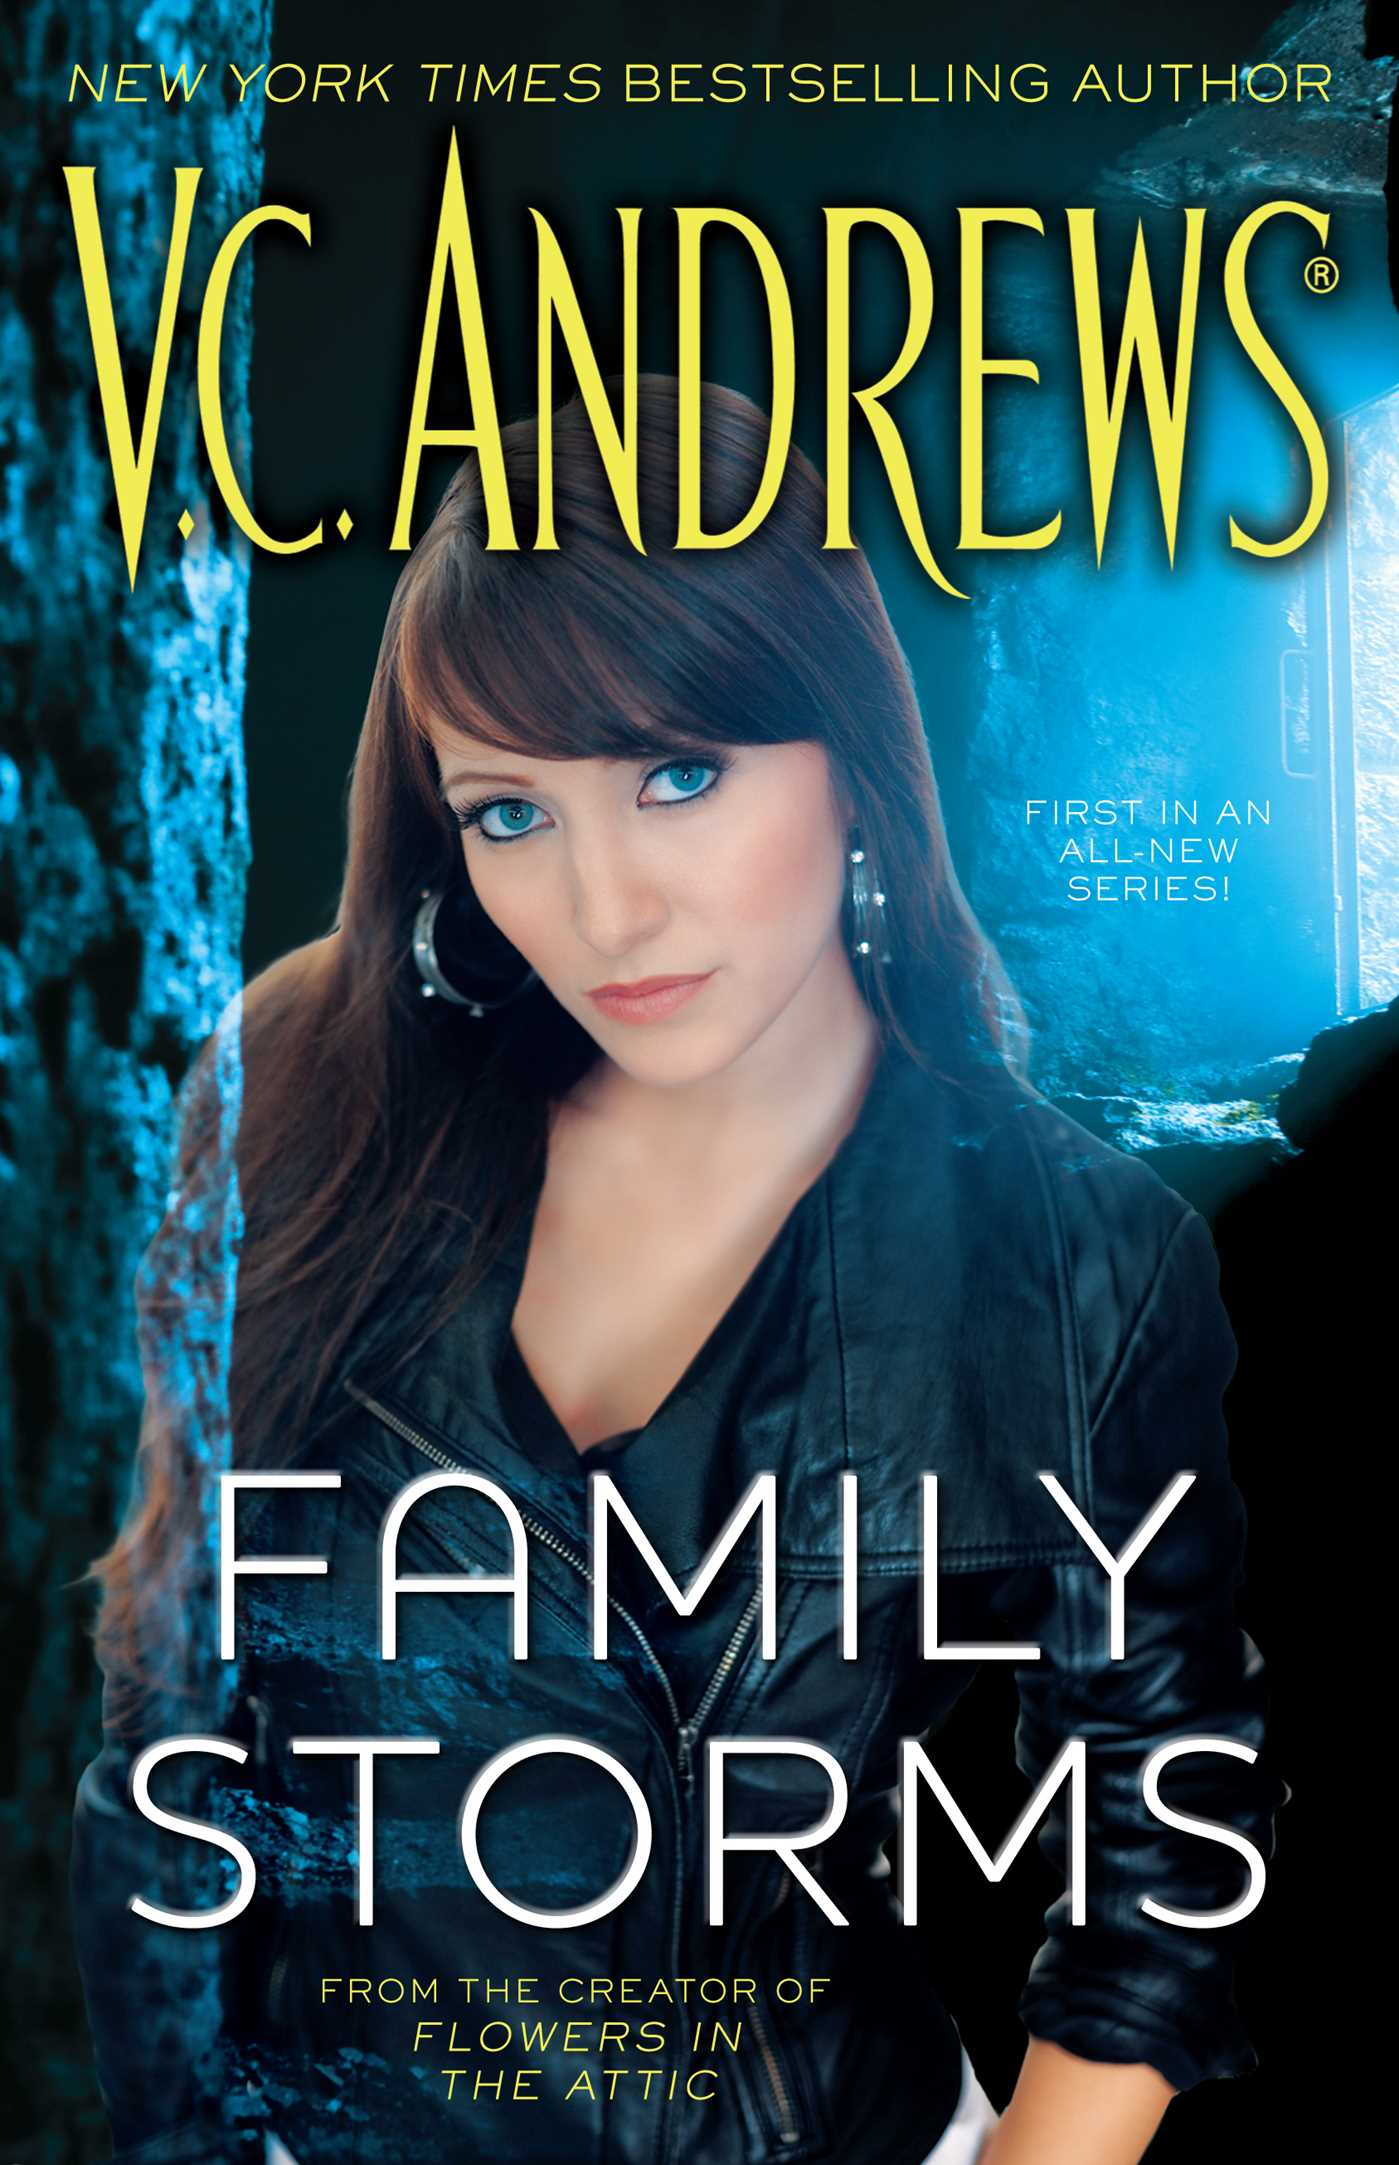 Family-storms-9781439181140_hr